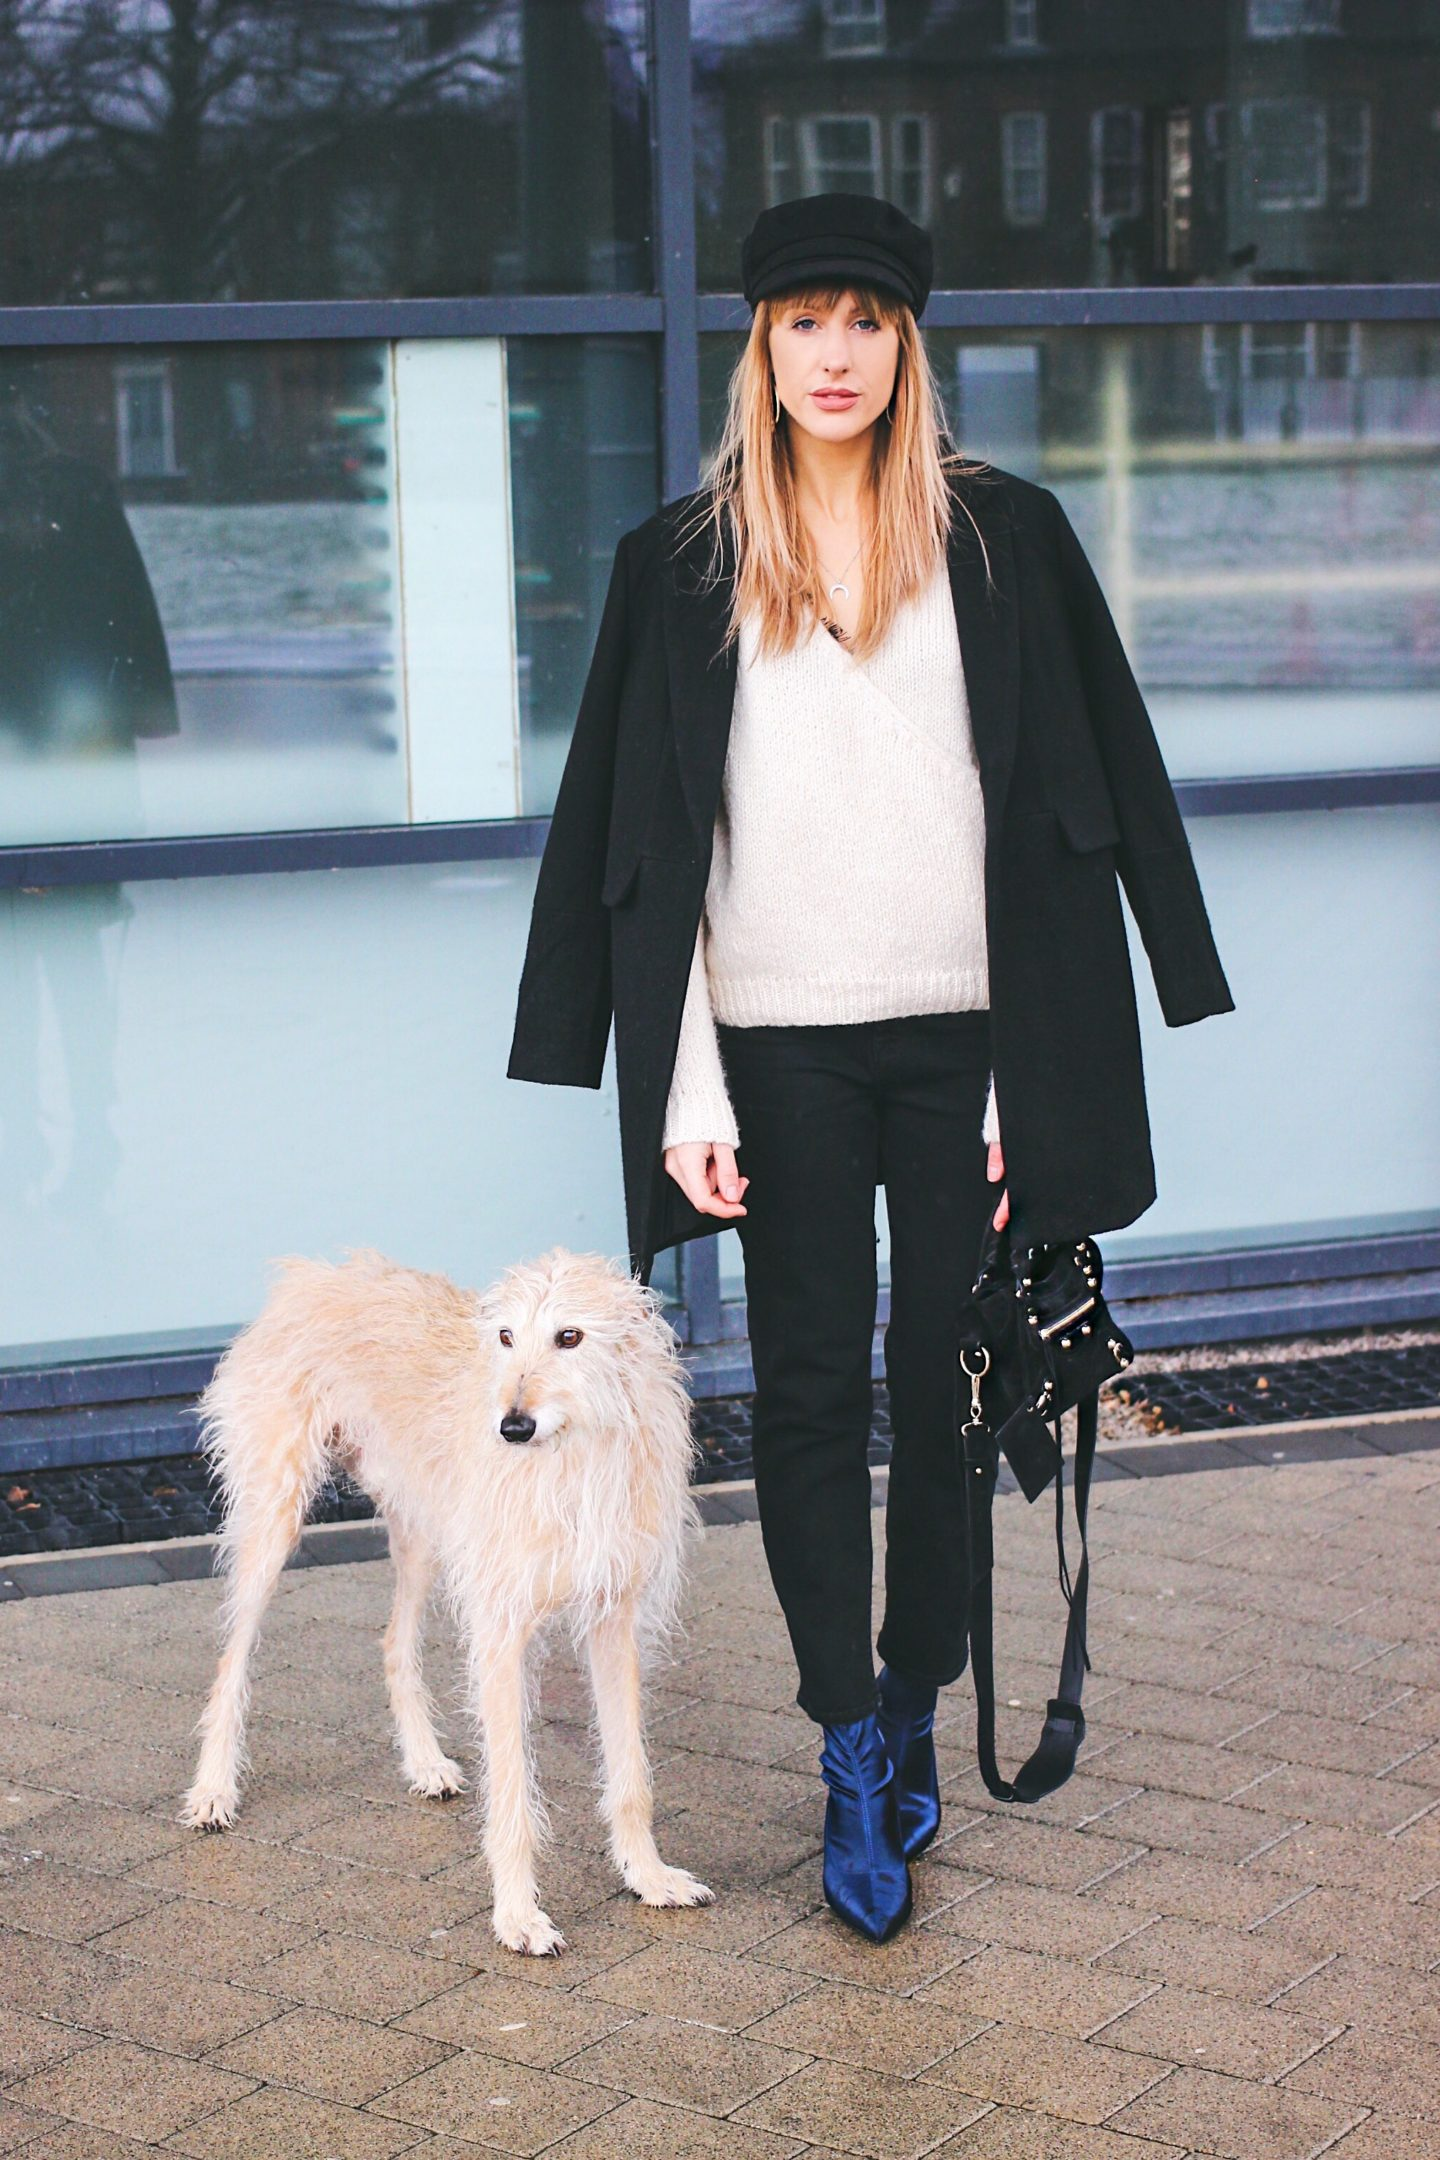 fashion bloggers and their pets charlotte and brody from Lurchhoundloves